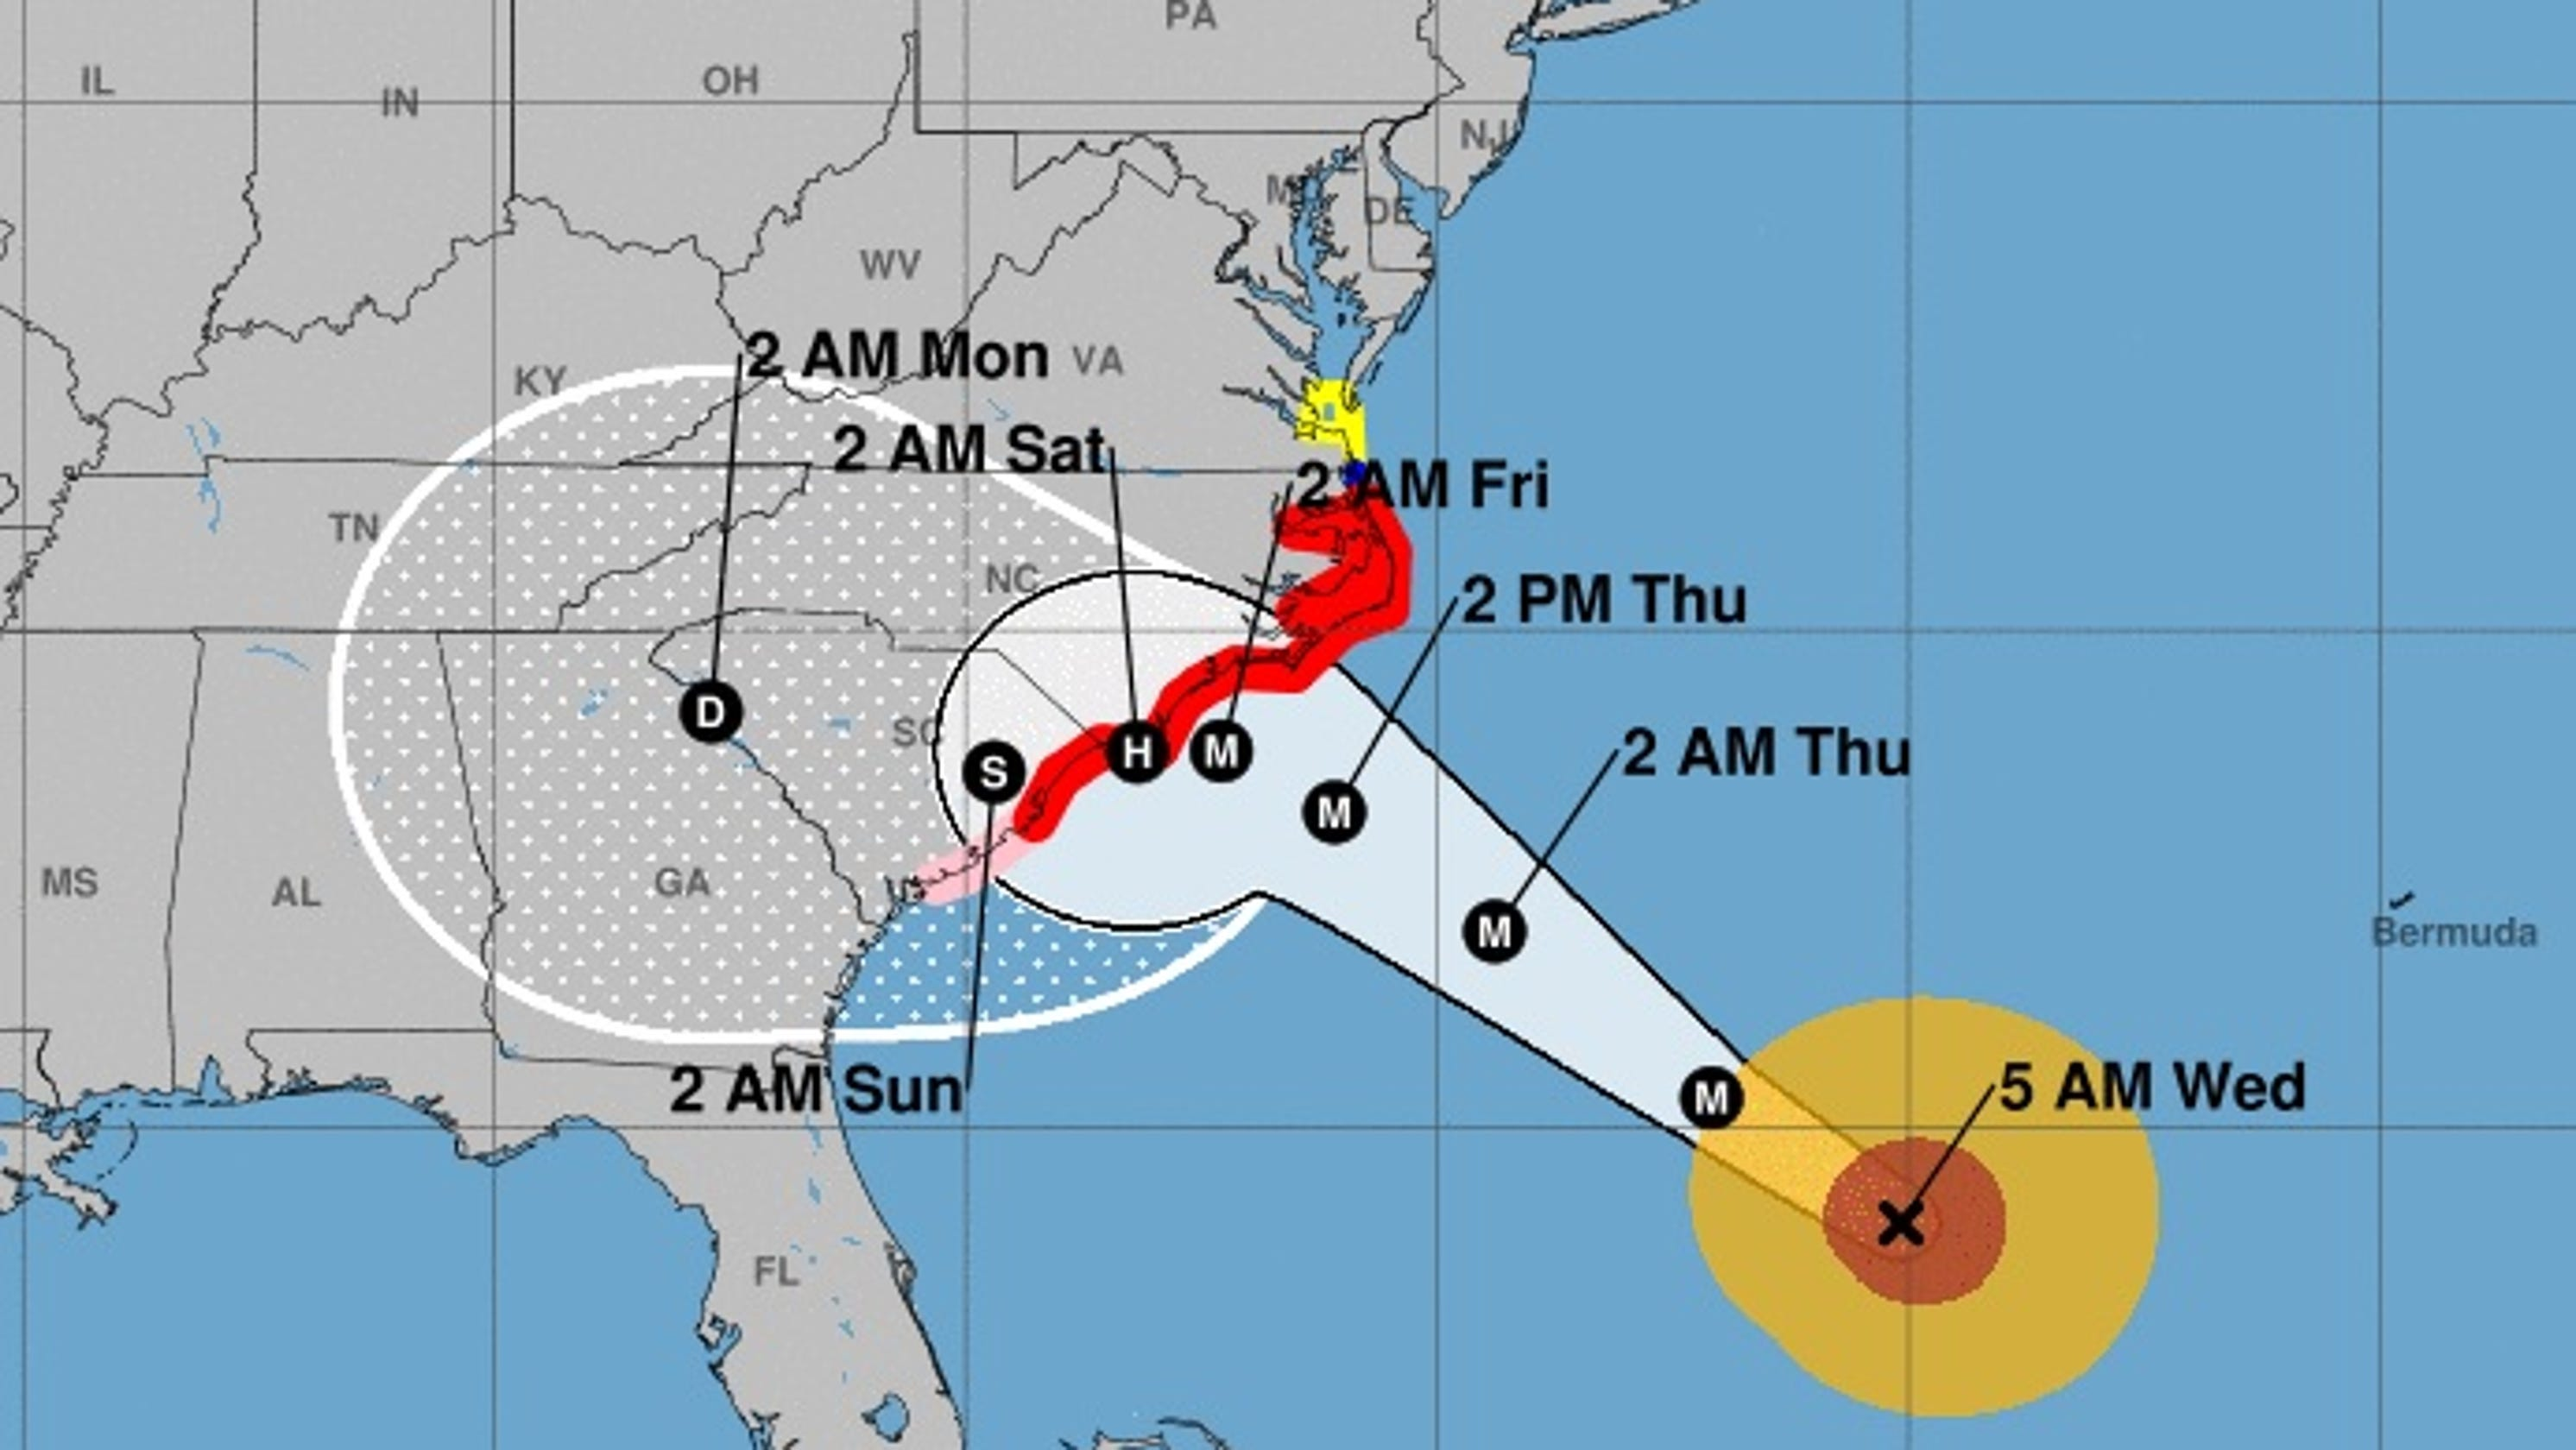 Hurricane Florence Path Where Is The Hurricane Right Now - Us-navy-hurricane-tracking-map